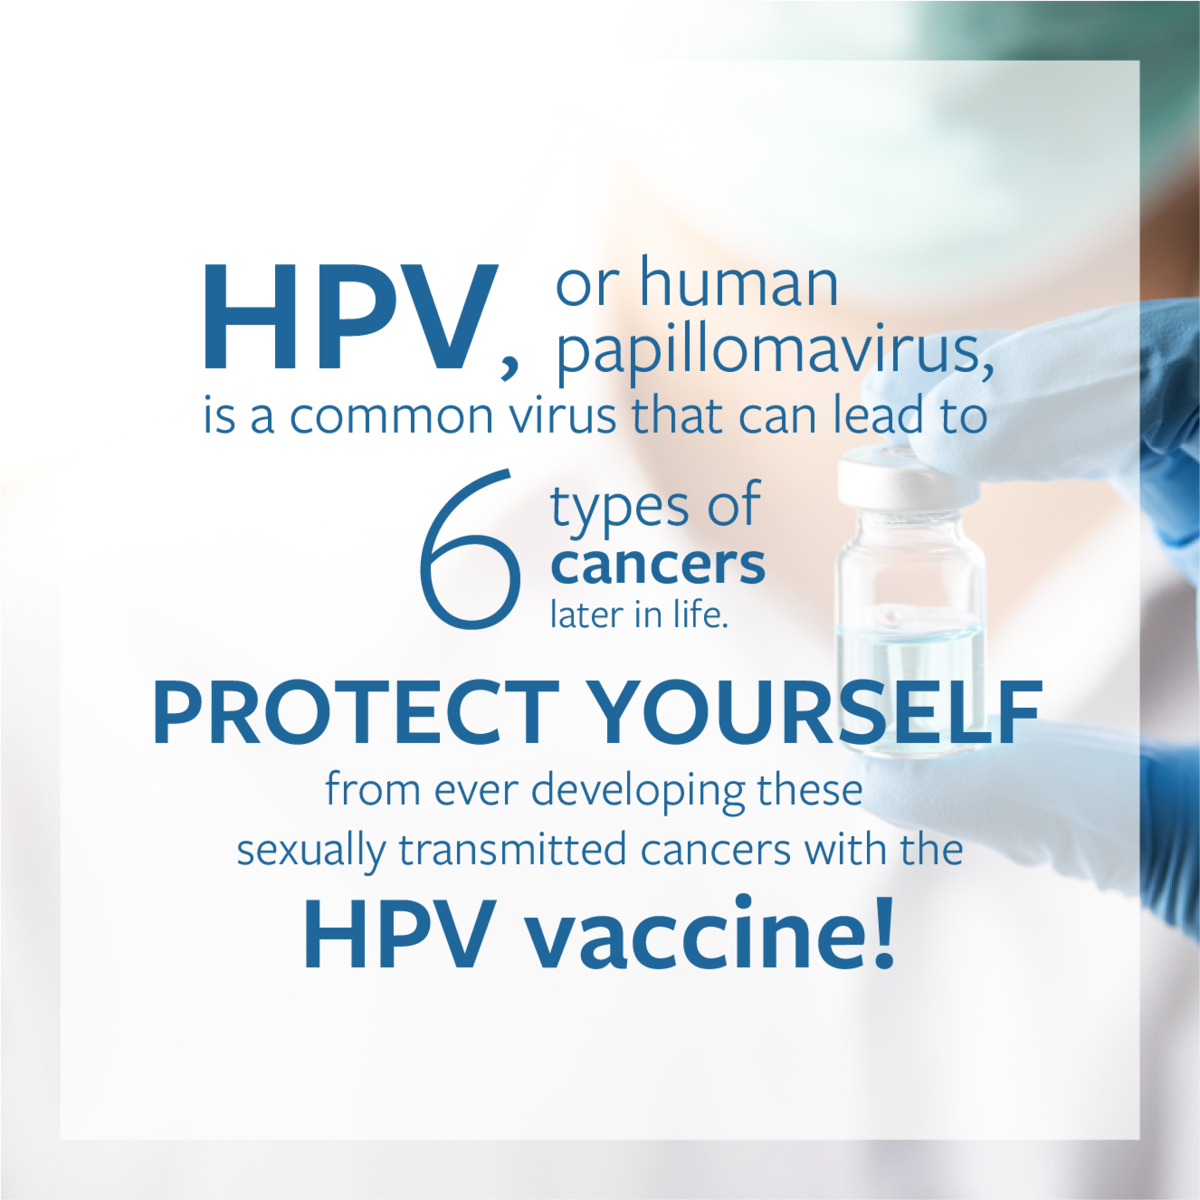 HPV or human papillomavirus, is a common virus that can lead to 6 types of cancers later in life. Protect yourself from every developing these sexually transmitted cancers with the HPV vaccine!